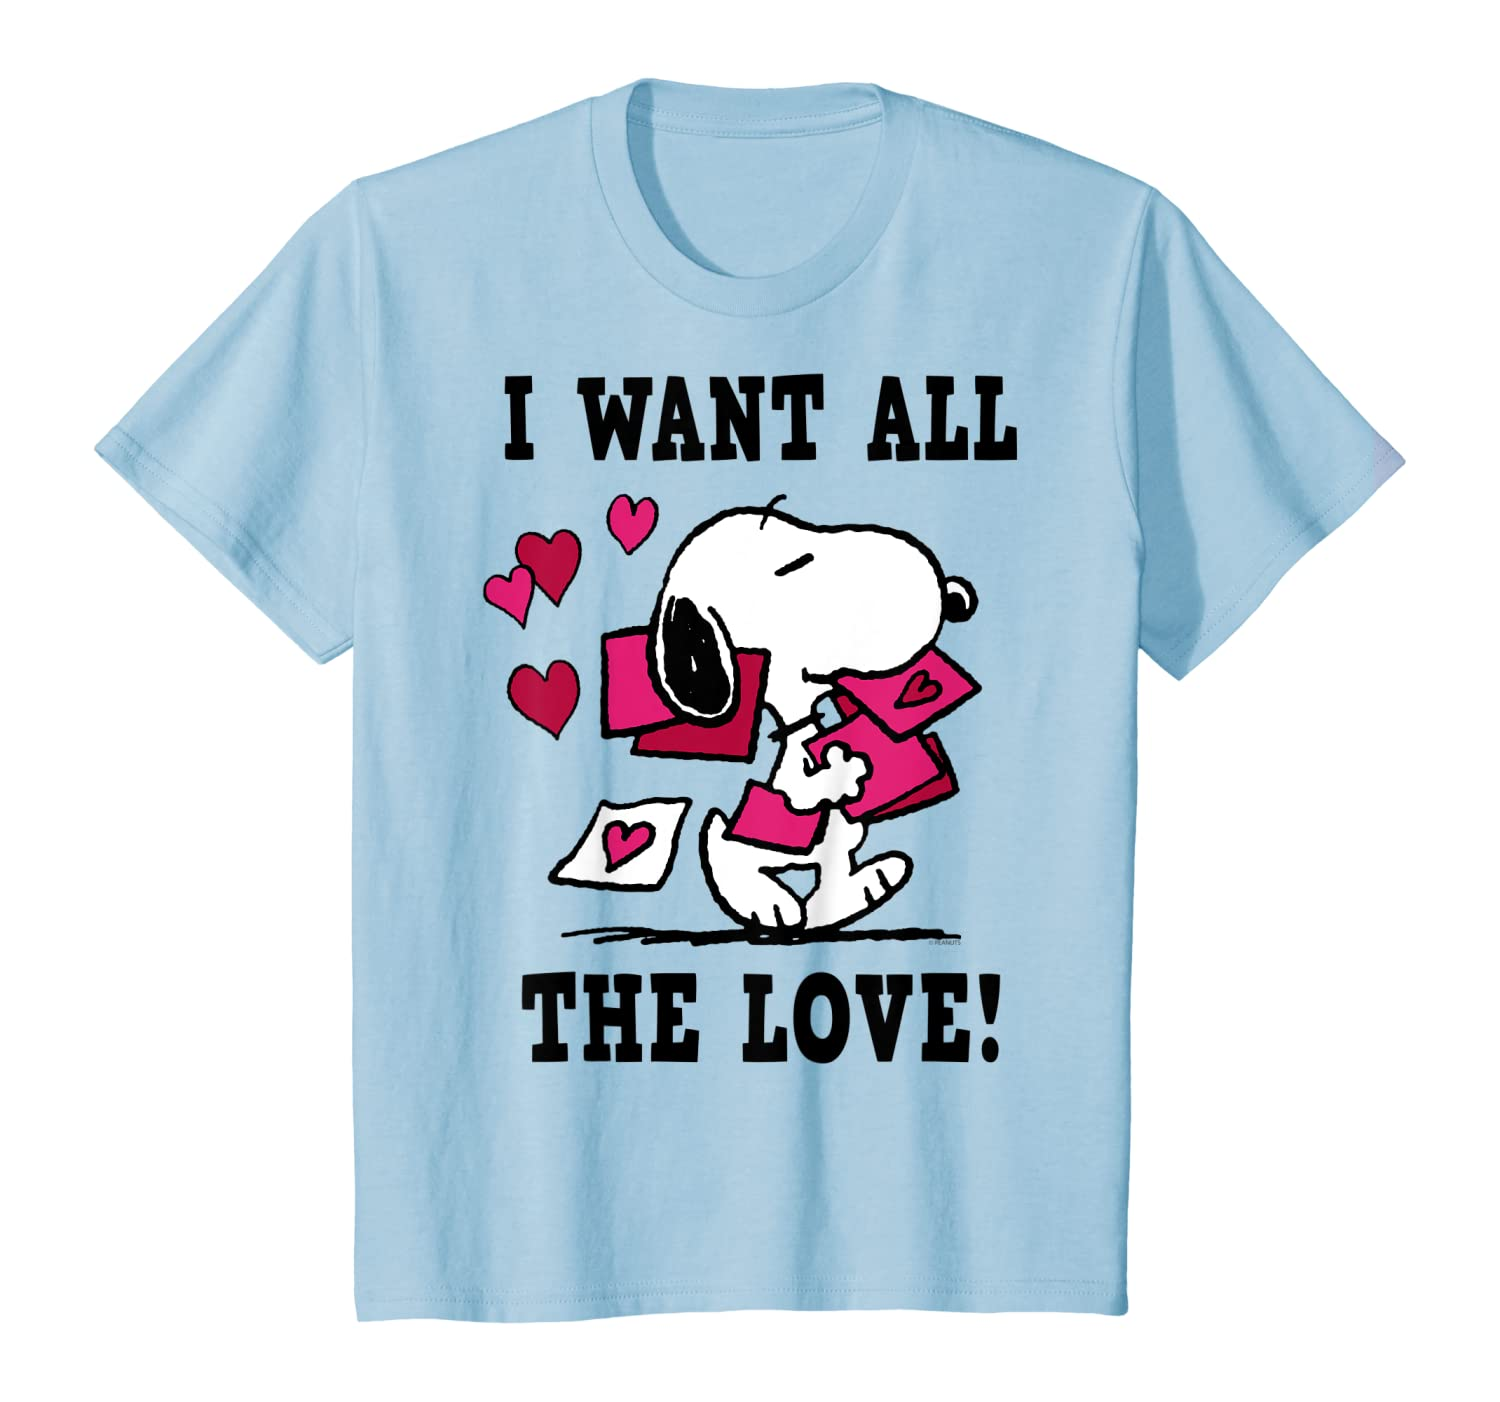 Peanuts-Snoopy-All-the-Love-Valentines-T-Shirt